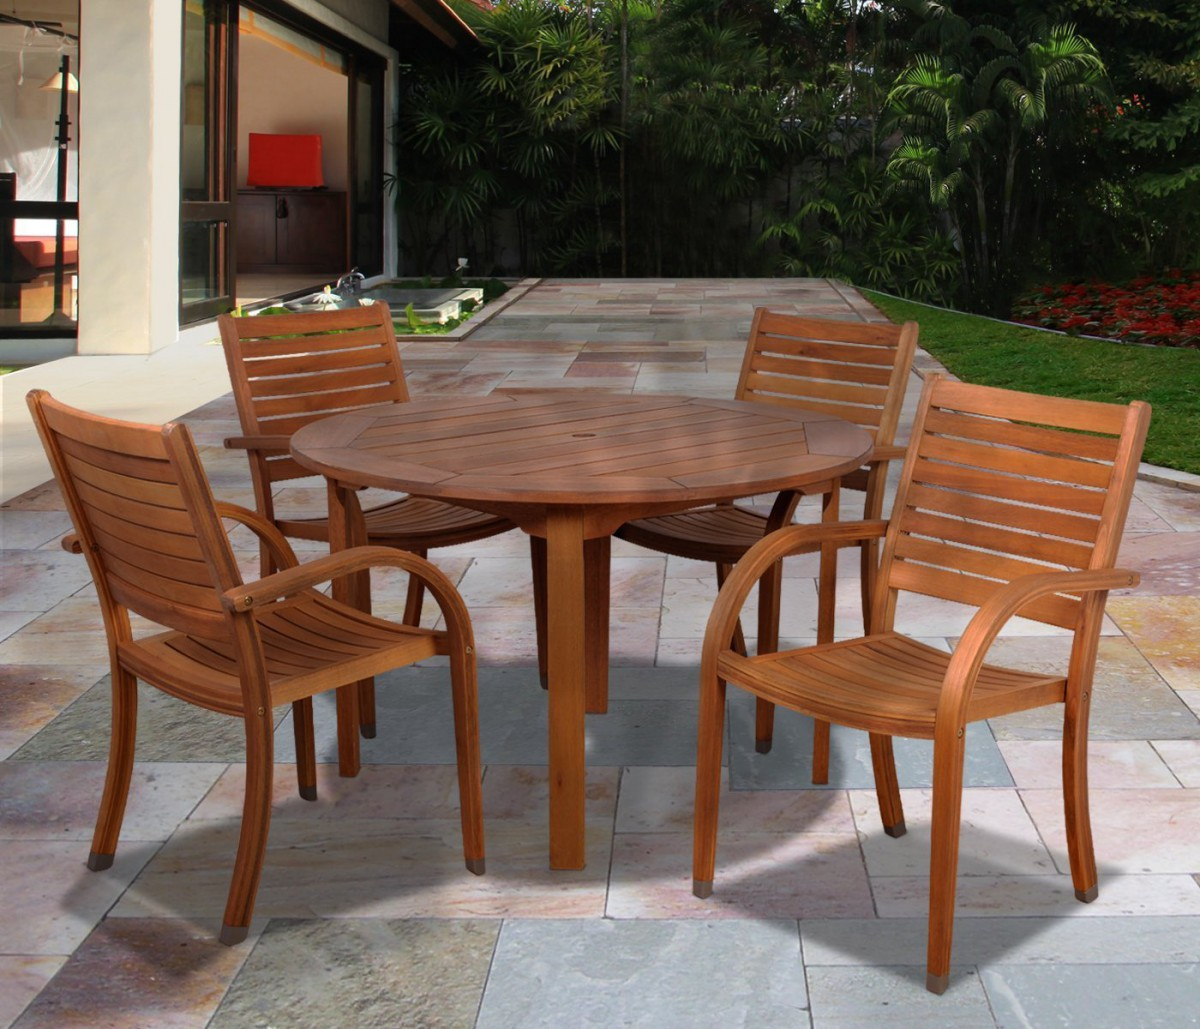 Amazonia arizona 5 piece wood outdoor dining set with 47 for Round dining table set